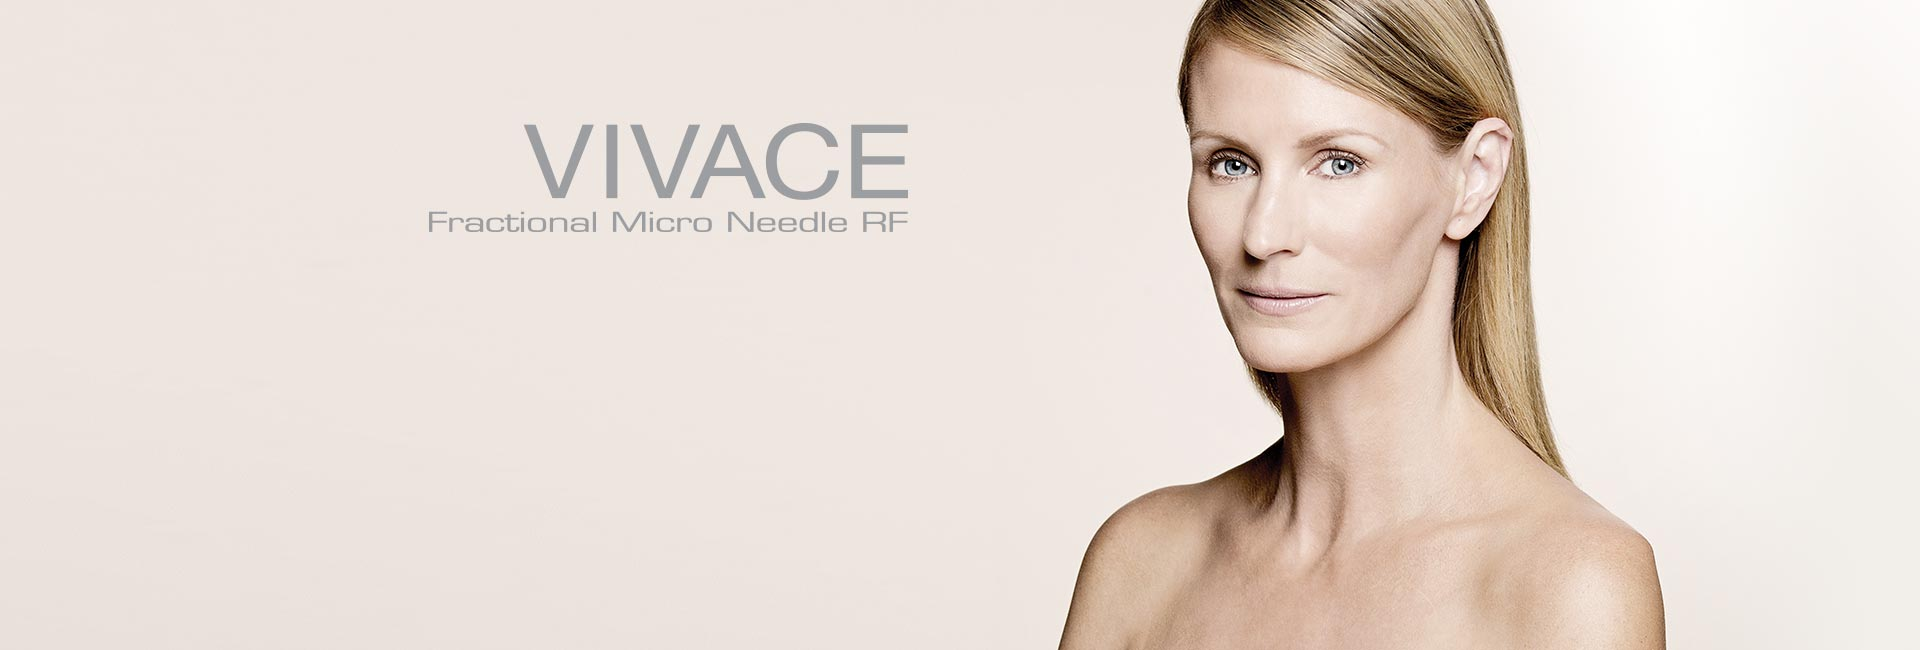 Vivace™ Fractional Micro Needle RF